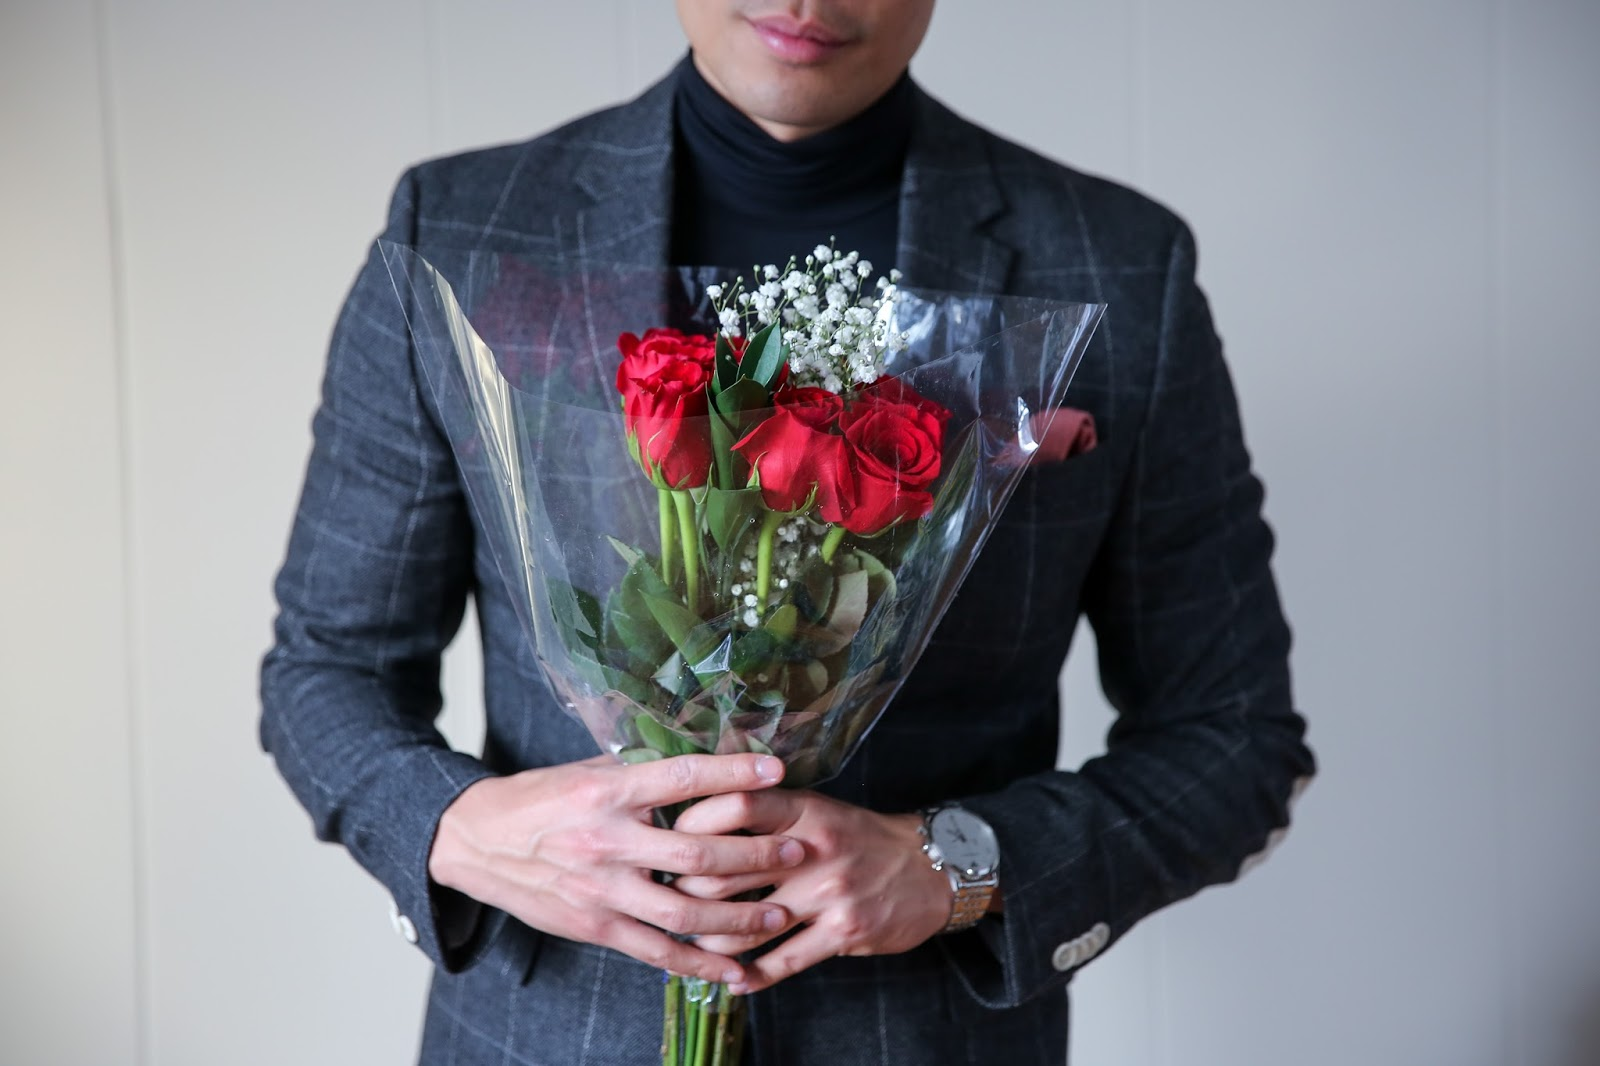 Black Turtleneck for Valentine's Day, Romantic Menswear outfit